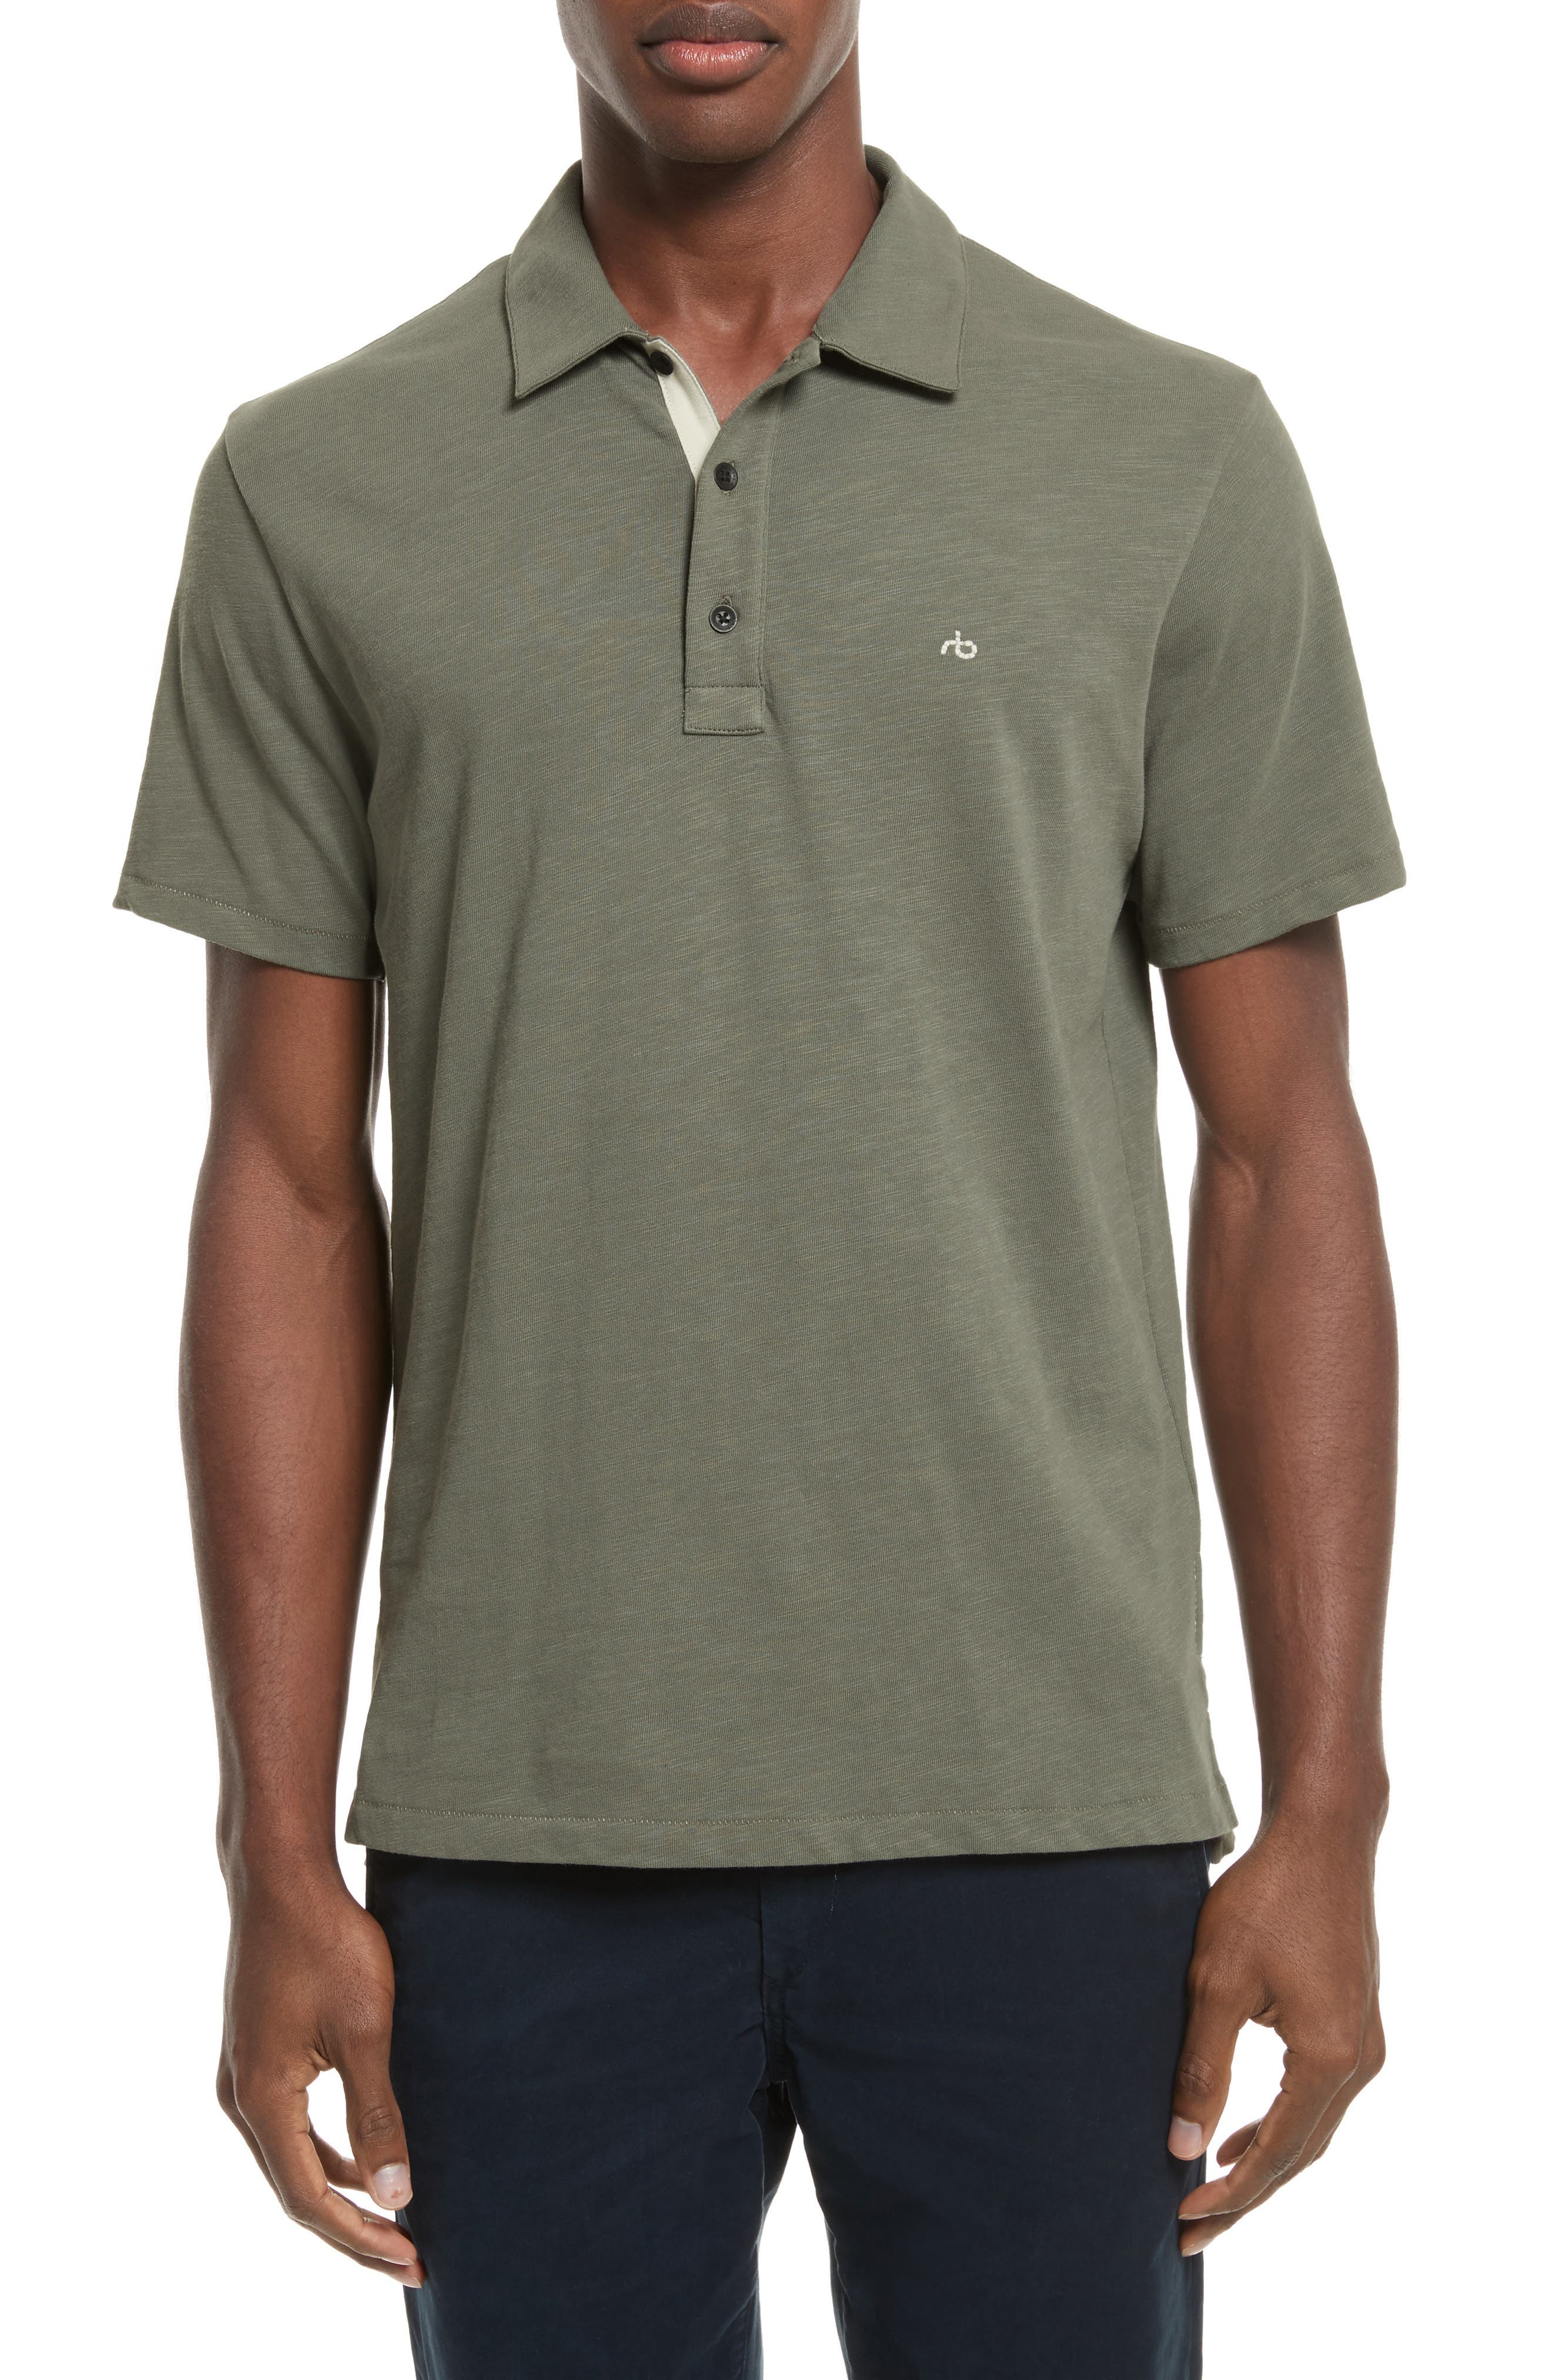 Alternate Image 1 Selected - rag & bone Standard Issue Slub Jersey Polo